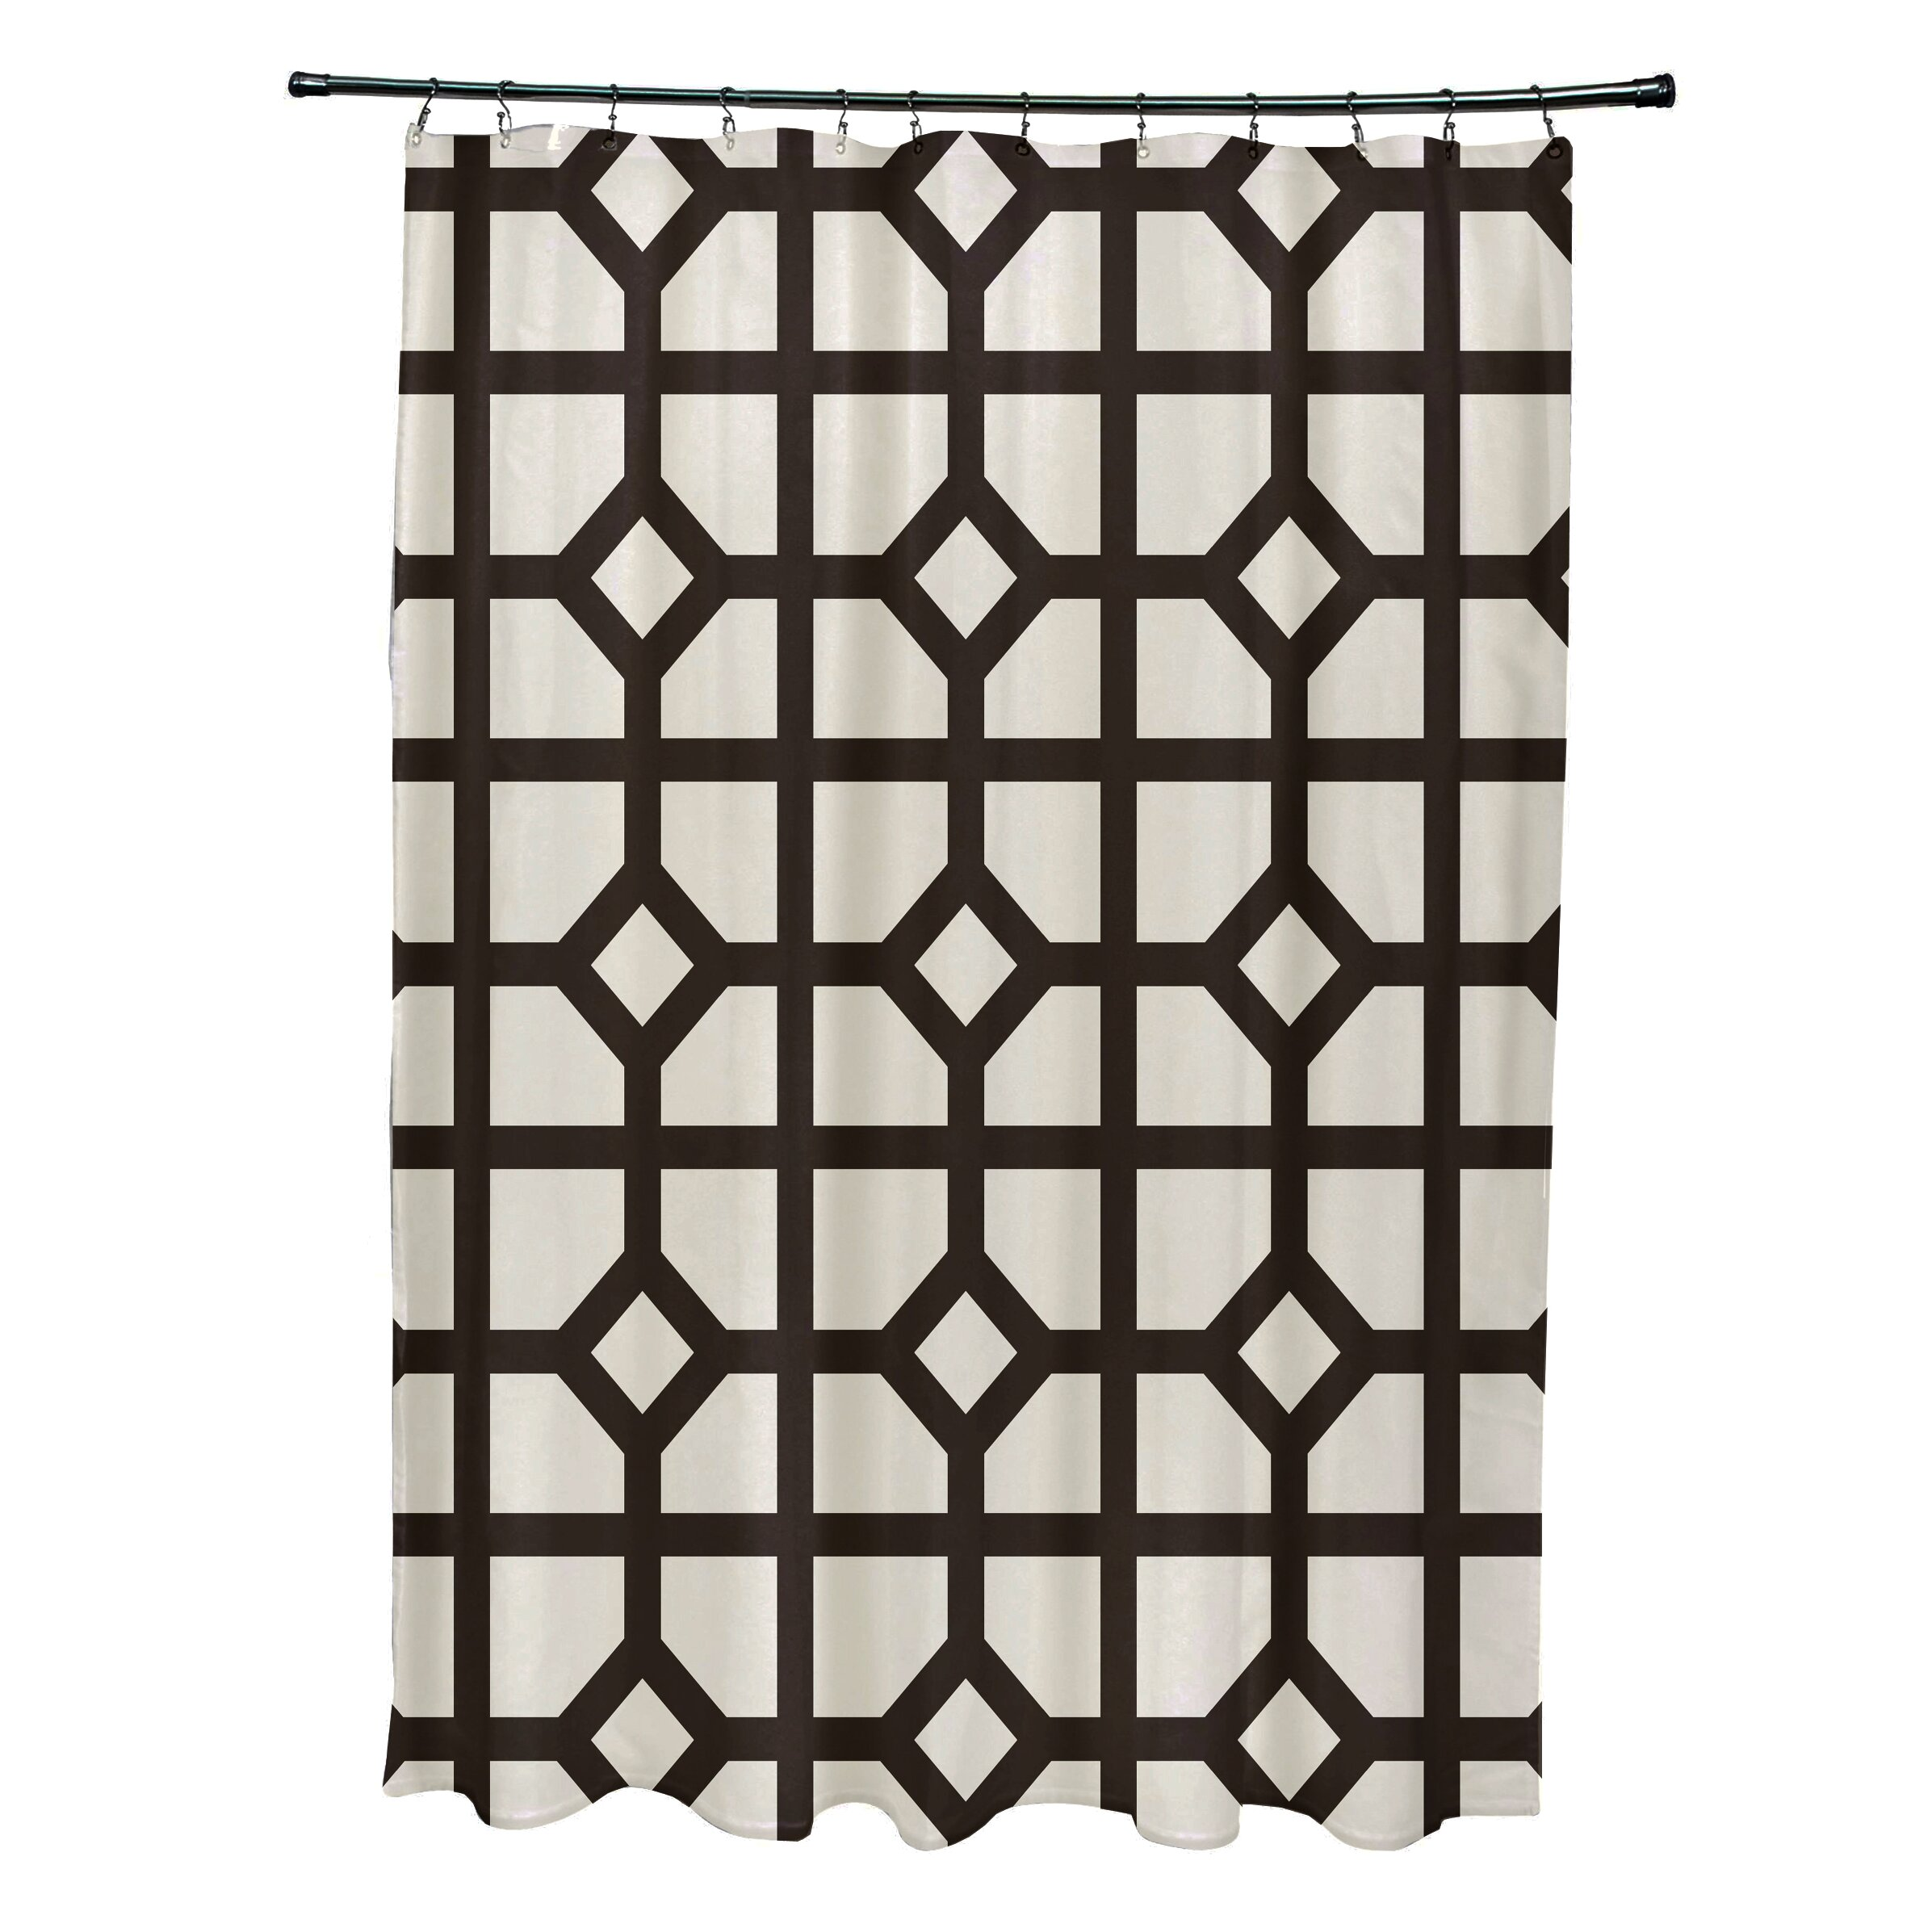 Don't Fret Geometric Print Shower Curtain by e by design